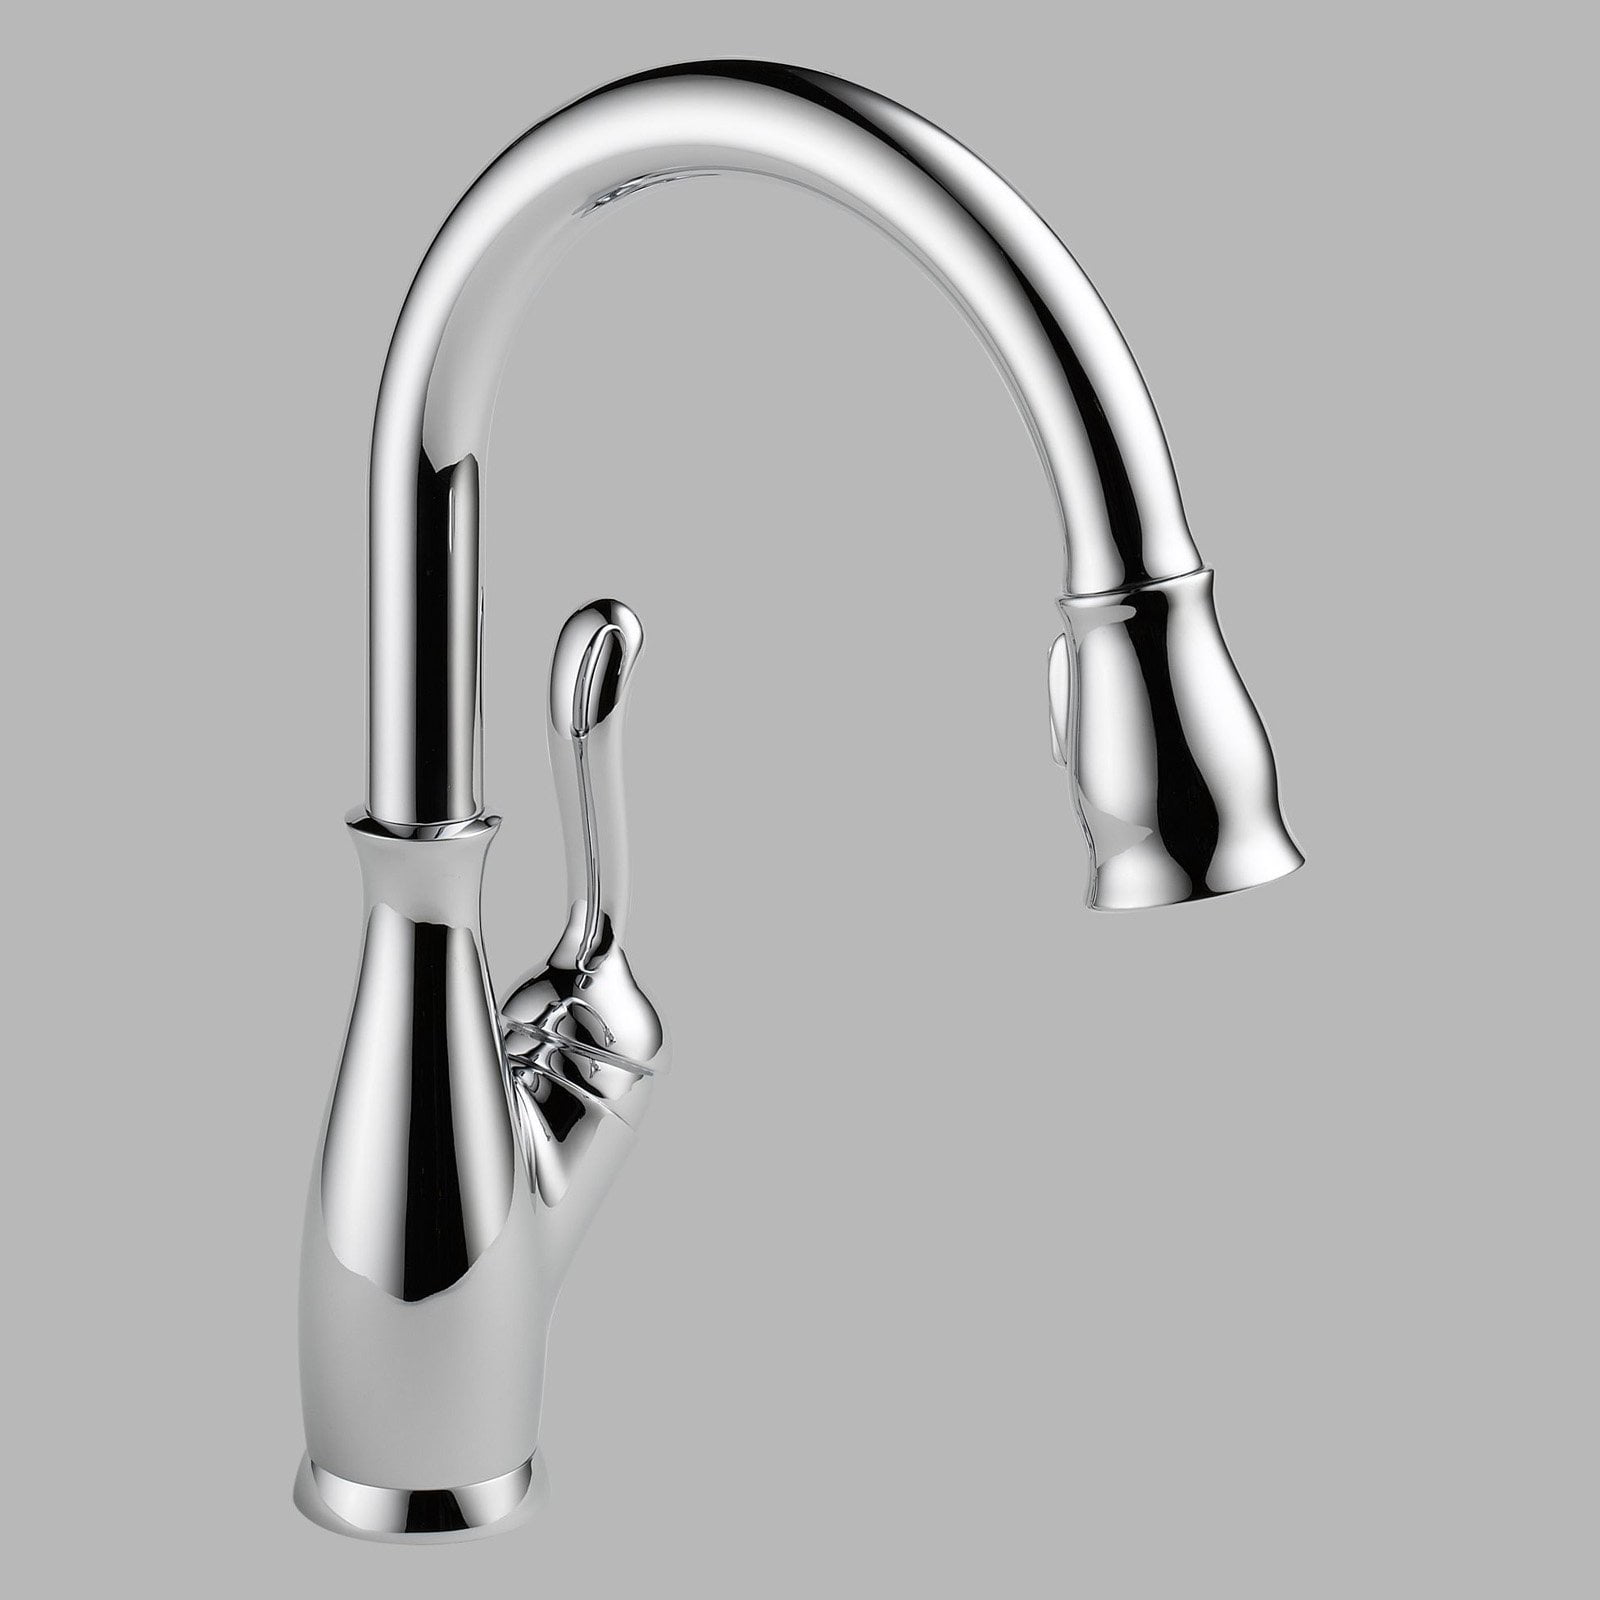 kitchen faucets delta leland kitchen faucet with pull down spray available in various colors walmart com 7845